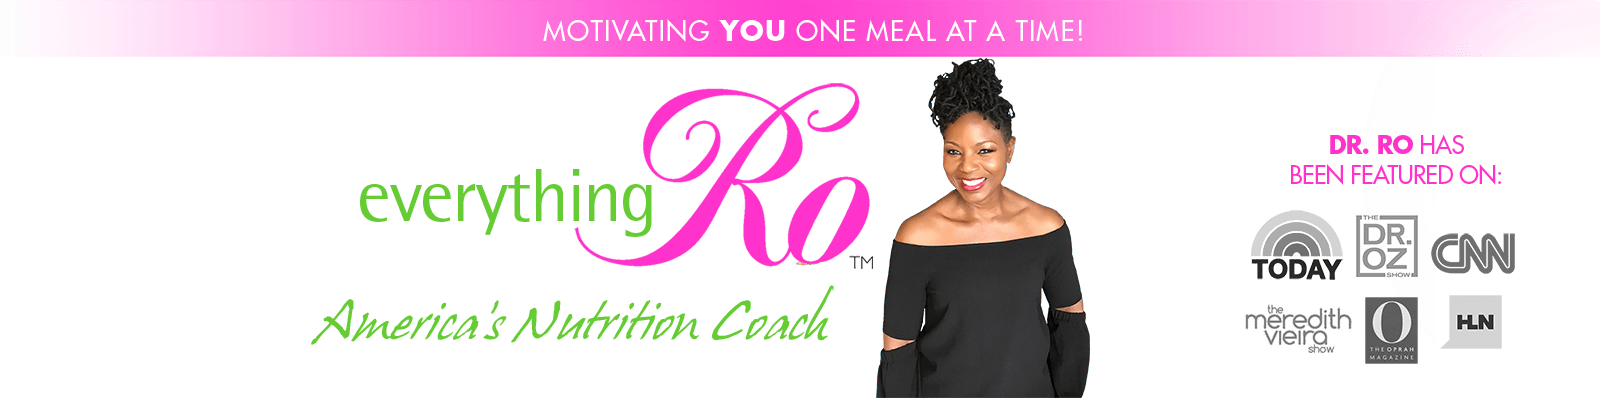 Everything Ro - Motivating You One Meal At A Time